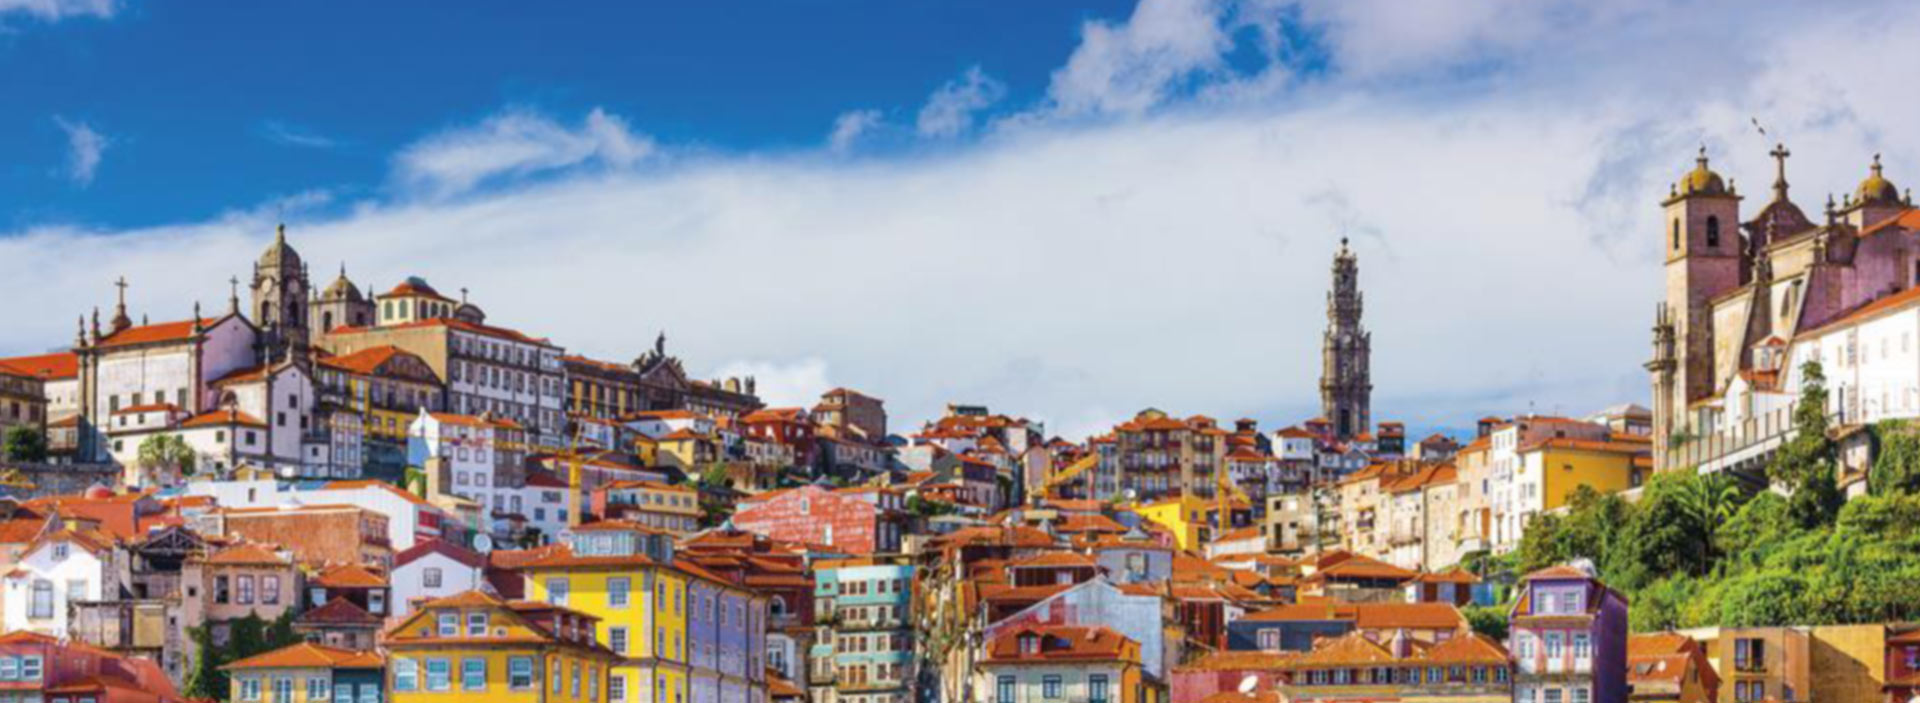 Stopover In Lisbon Panorama Travel